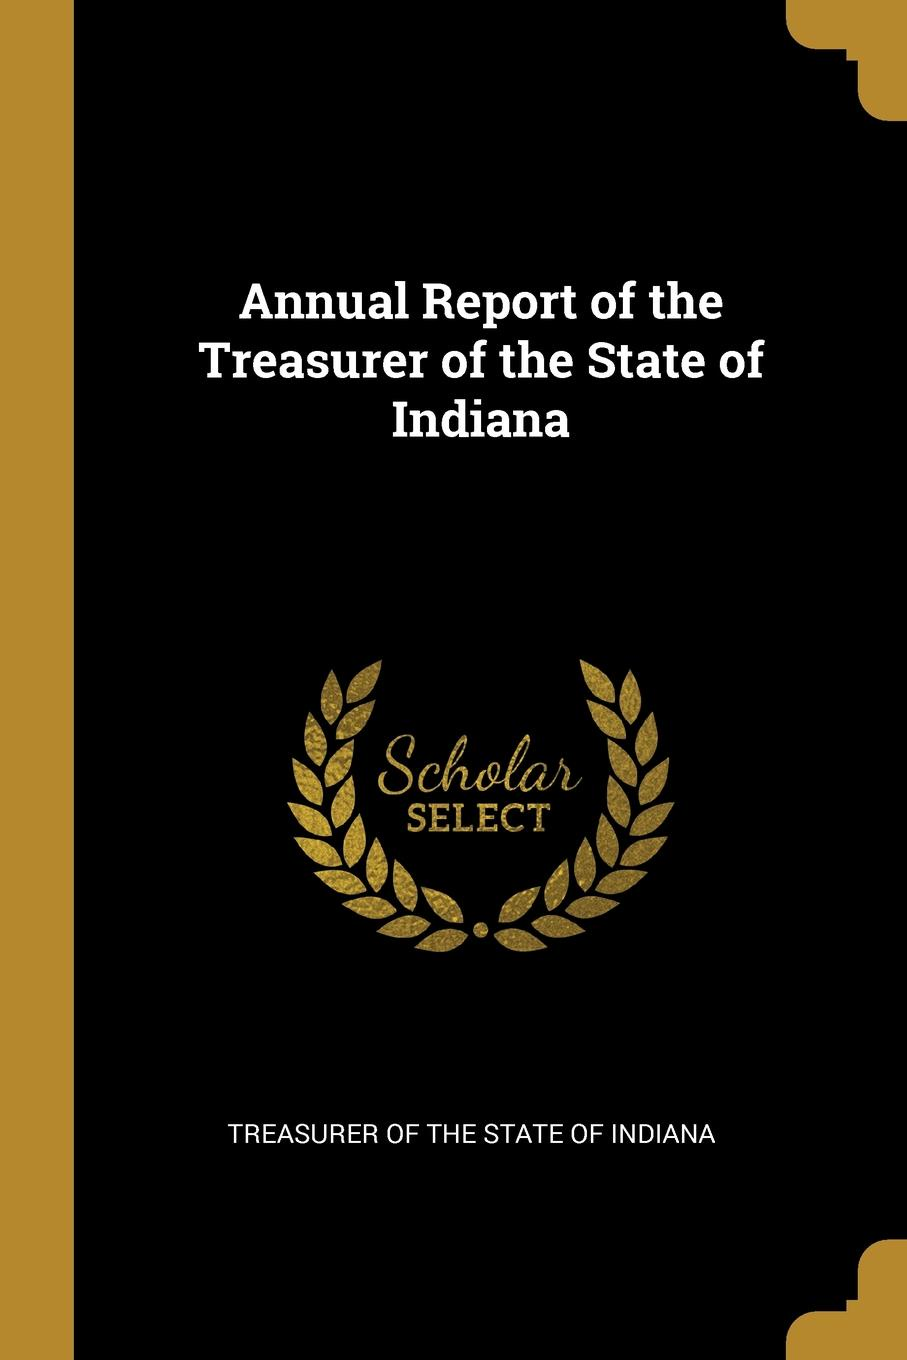 Treasurer of the State of Indiana Annual Report of the Treasurer of the State of Indiana